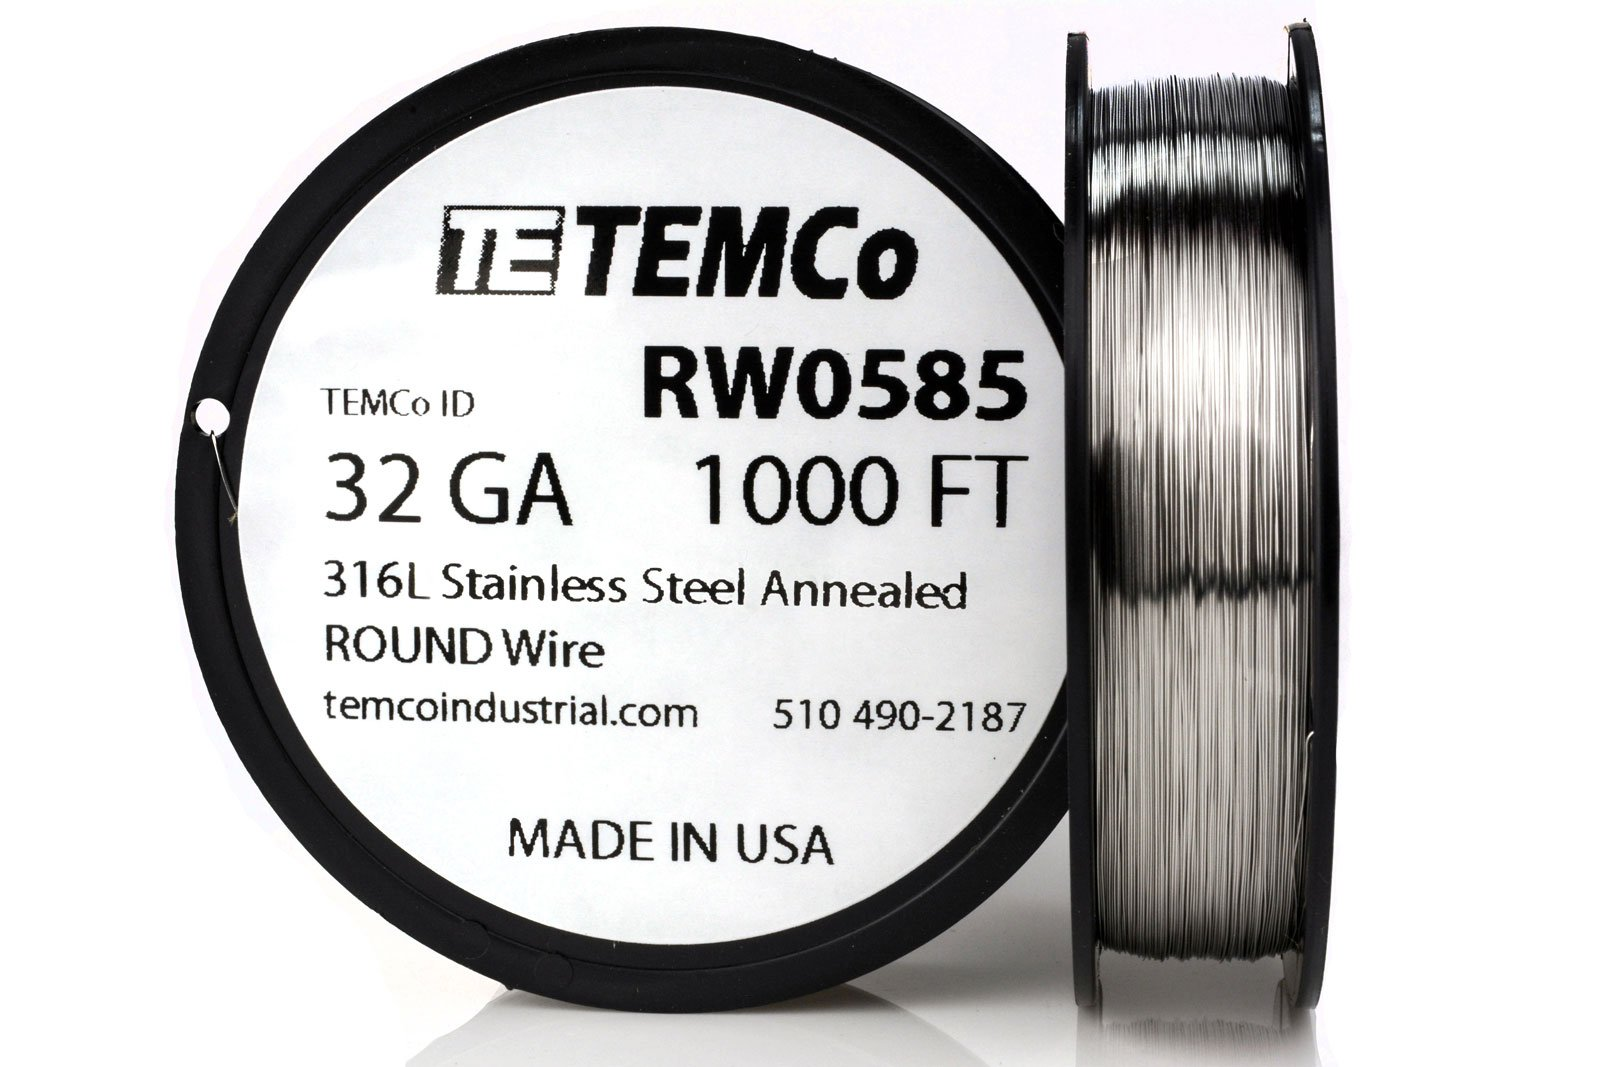 TEMCo Stainless Steel Wire SS 316L - 32 Gauge 1000 FT Non-Resistance AWG ga